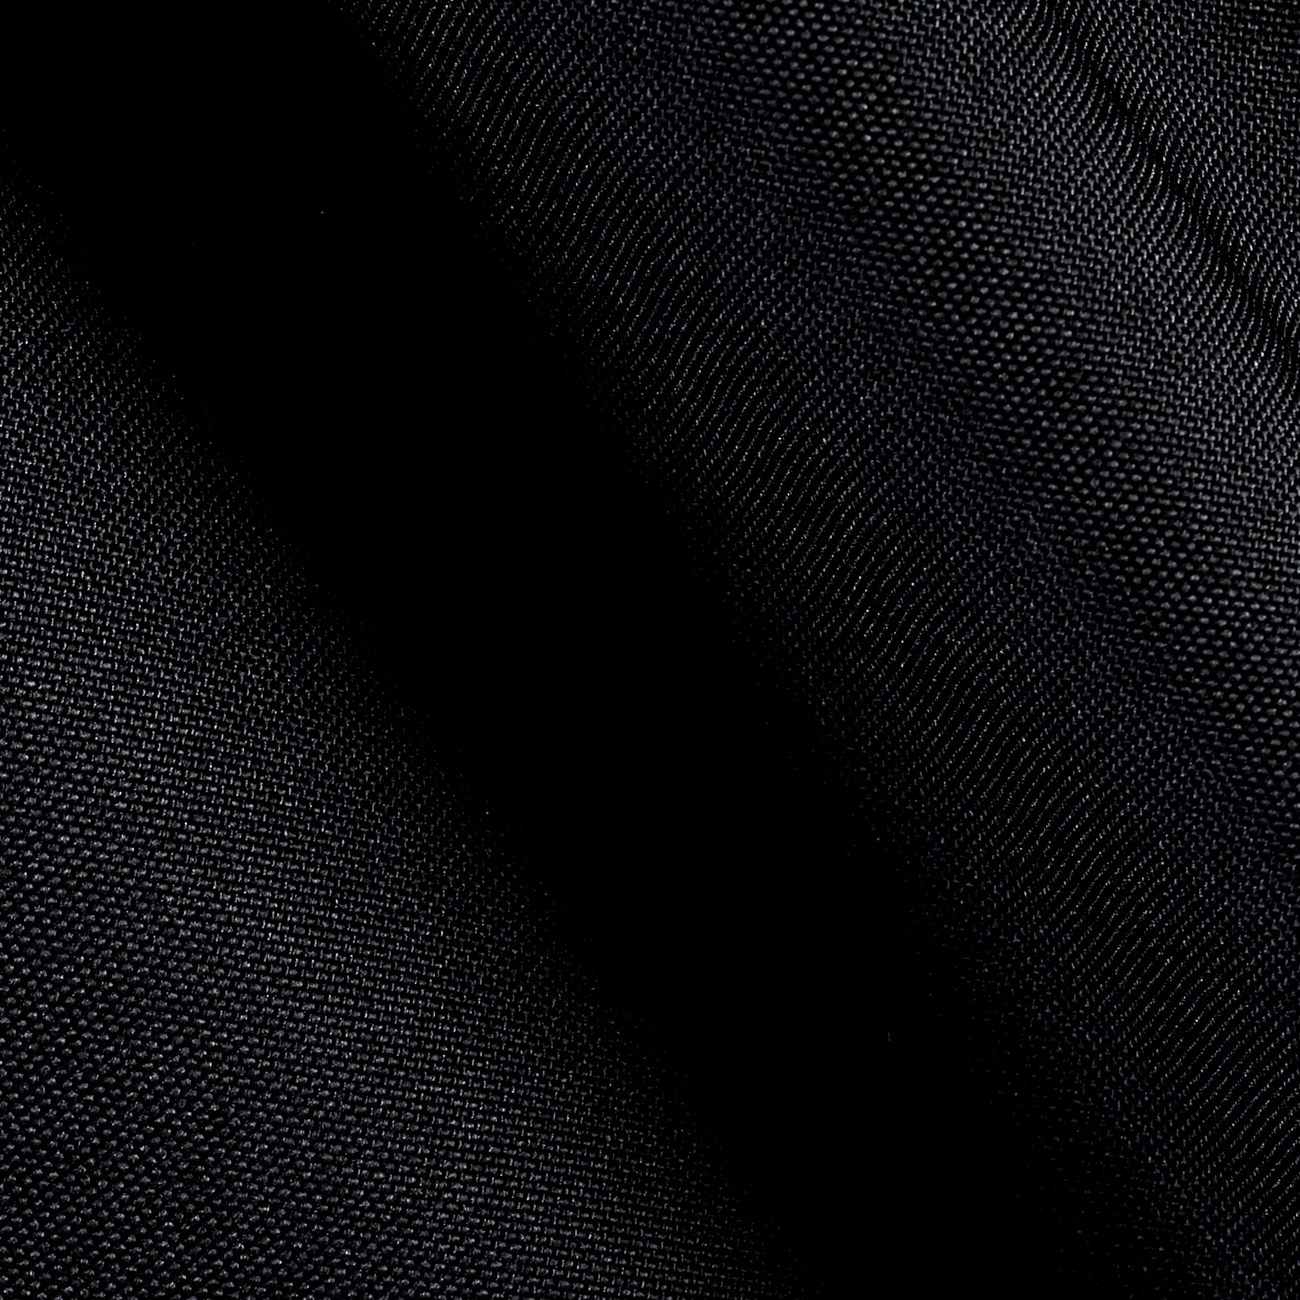 Outdoor Waterproof Oxford Sailcloth Black Fabric by Ben in USA